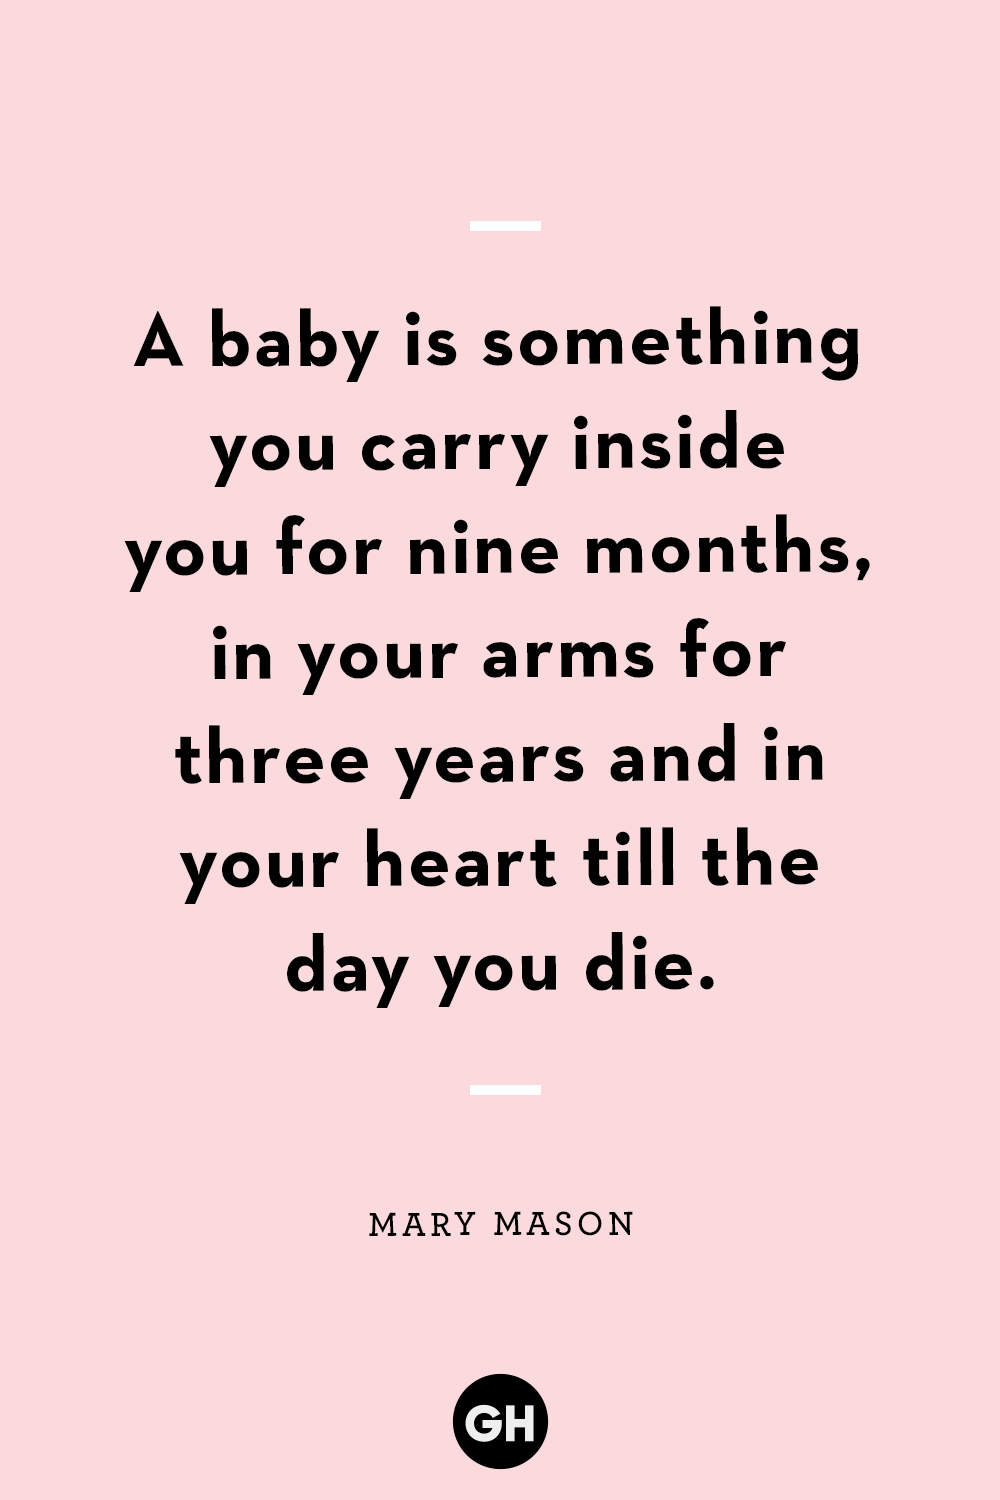 11 Best New-Mom Quotes - Wise Sayings for First-Time Parents